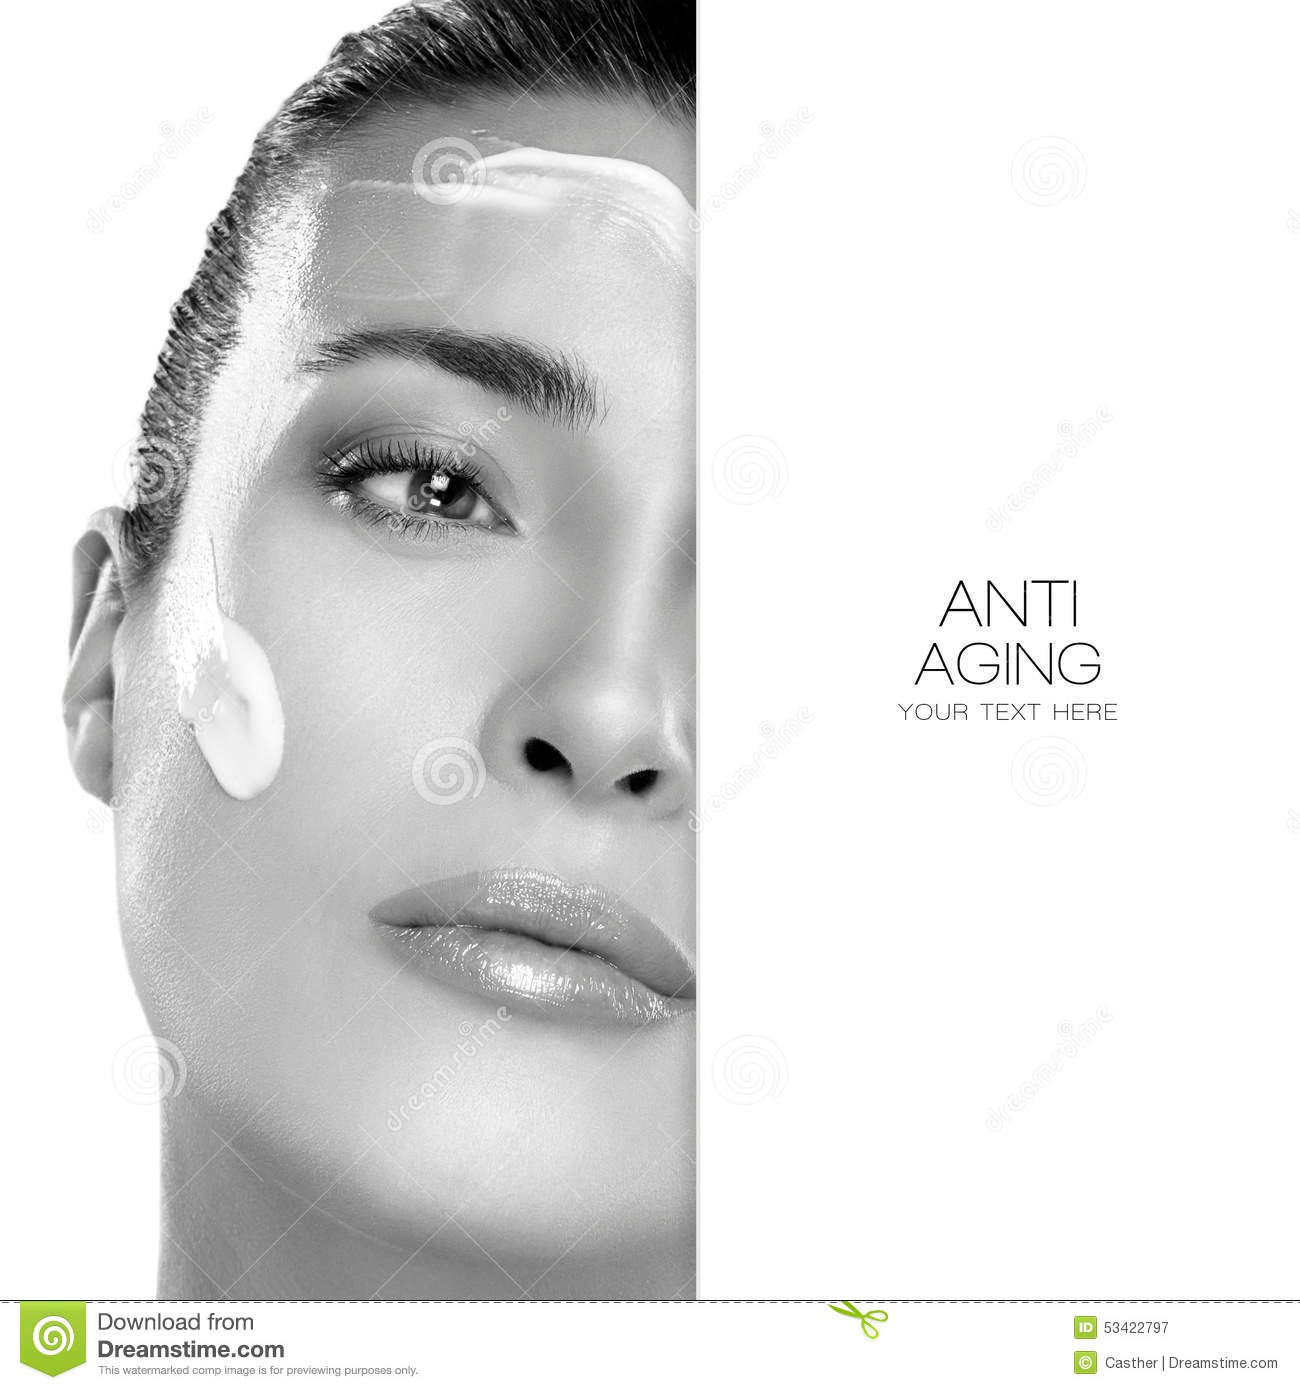 Anti Aging And Beauty Concept Spa Treatment Template Design Stock Photo